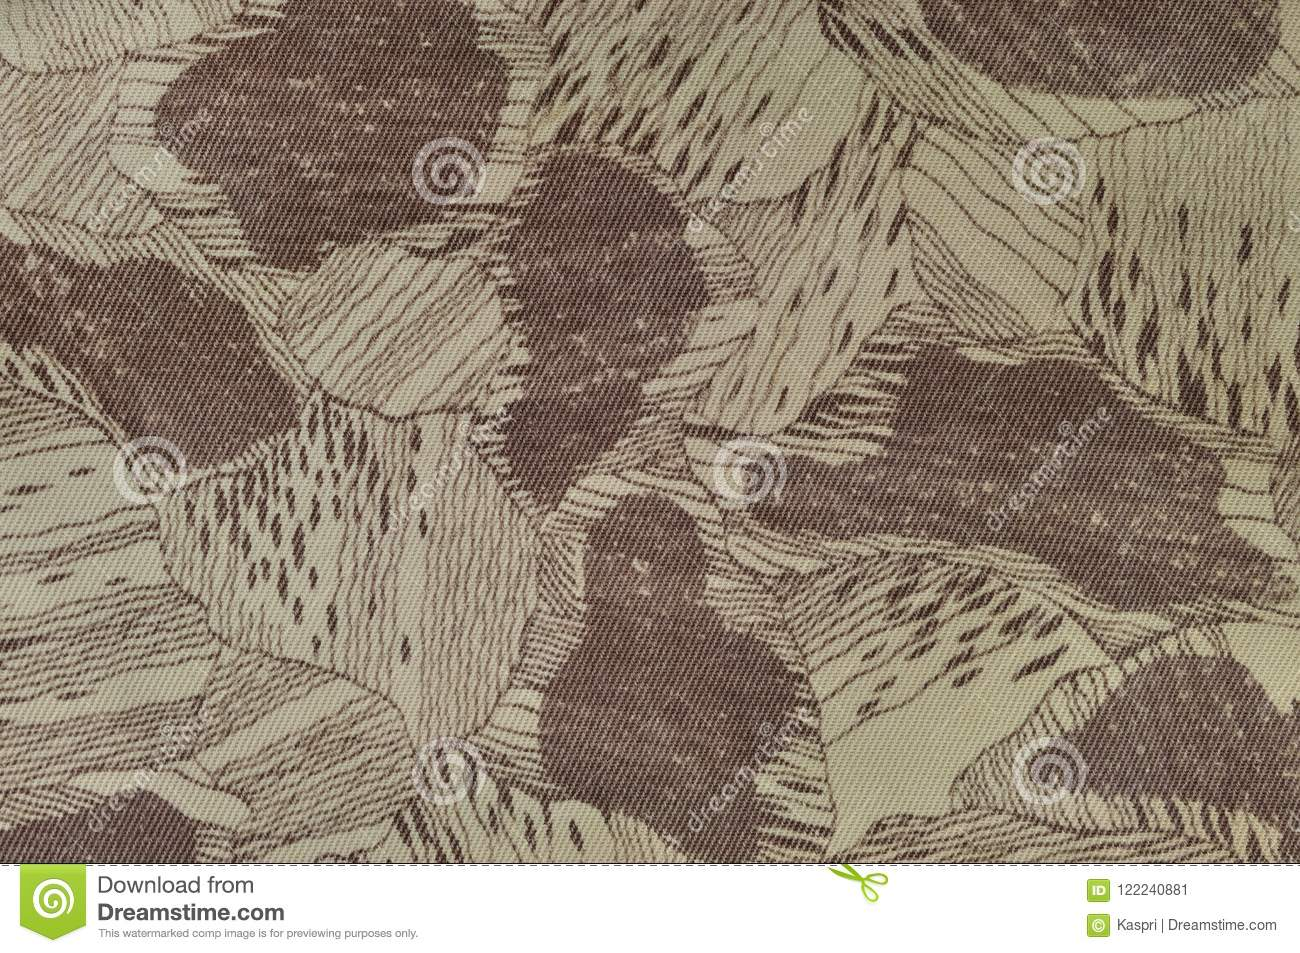 Custom camouflage texture pattern, horizontal pale green tan taupe brown textured camo background, old aged weathered cotton twill